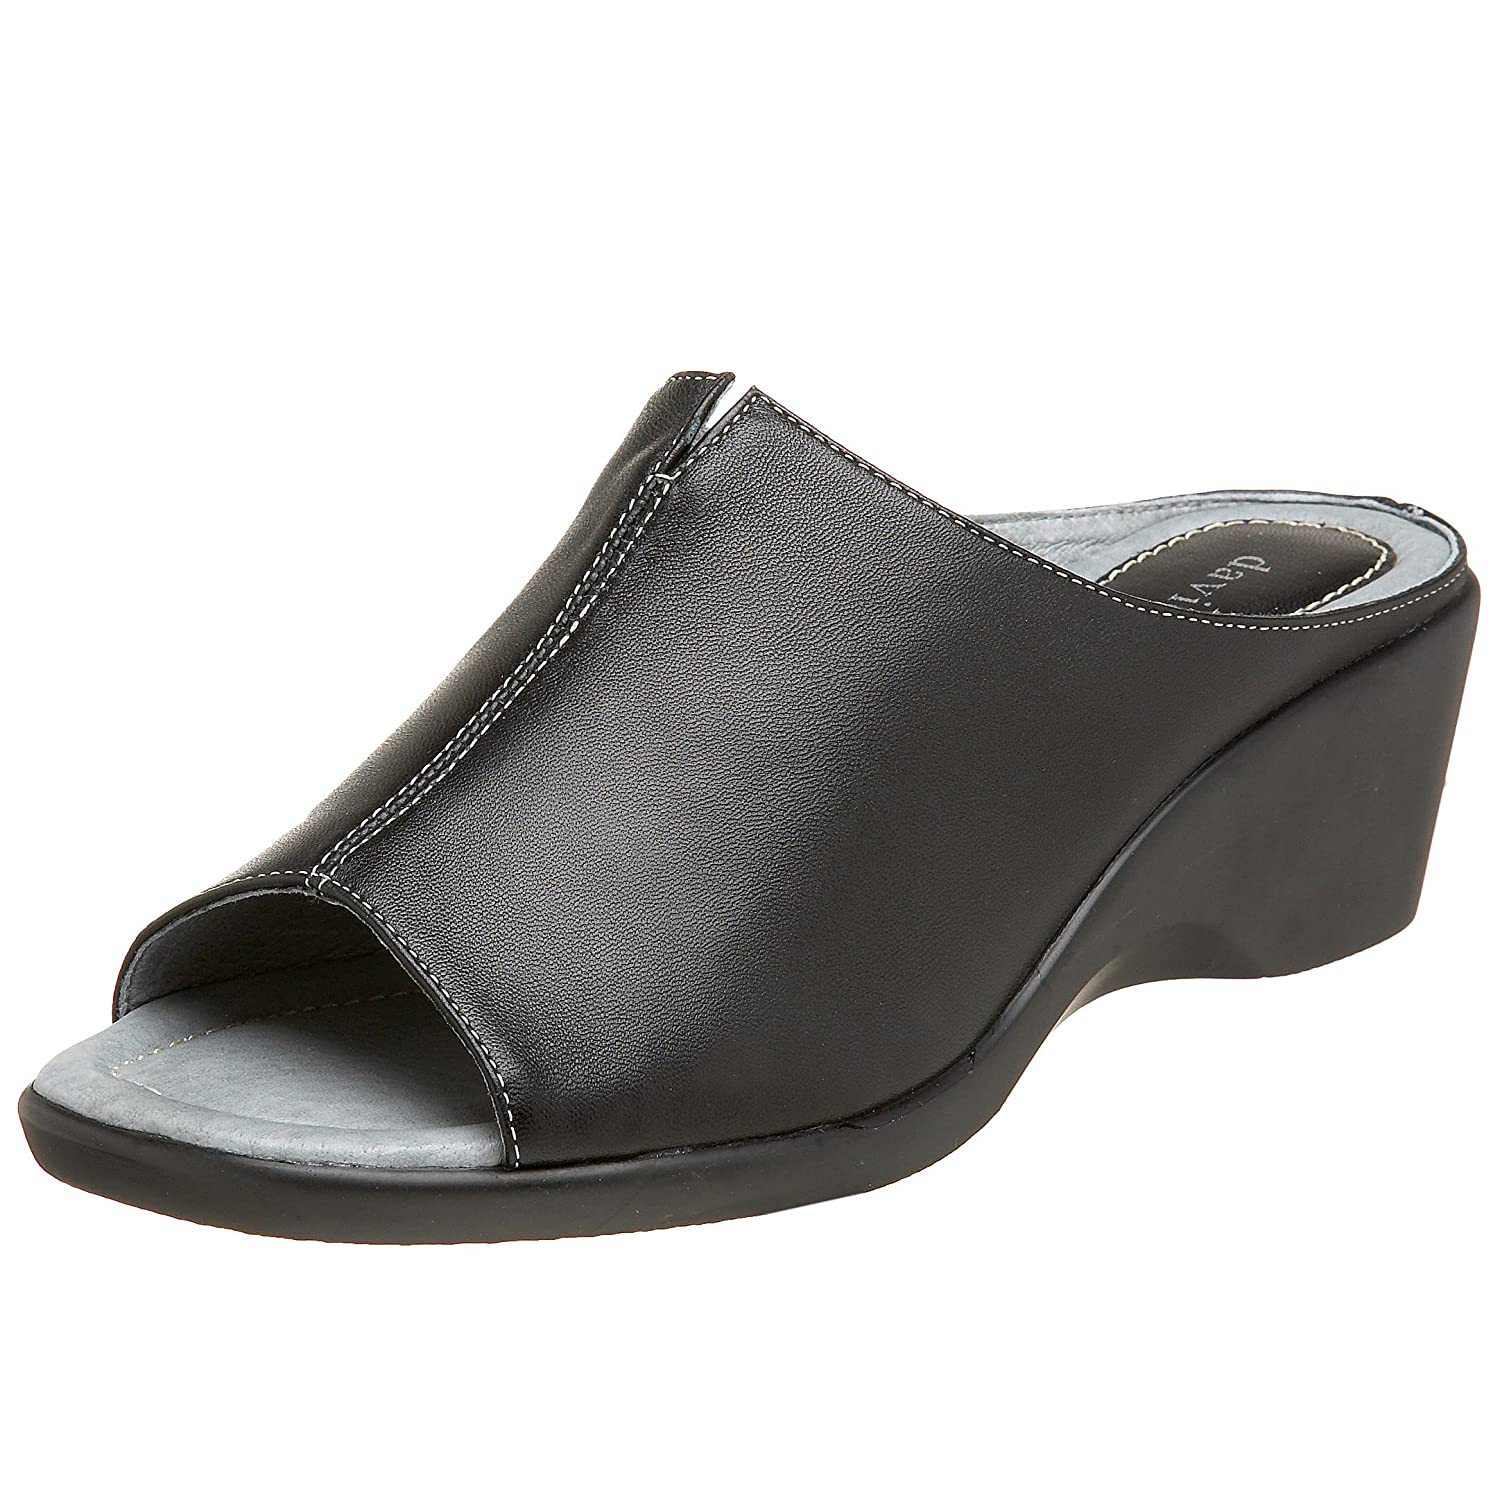 David Tate Women's Gloria Slide B001K7IYNC 6.5 W US|Black